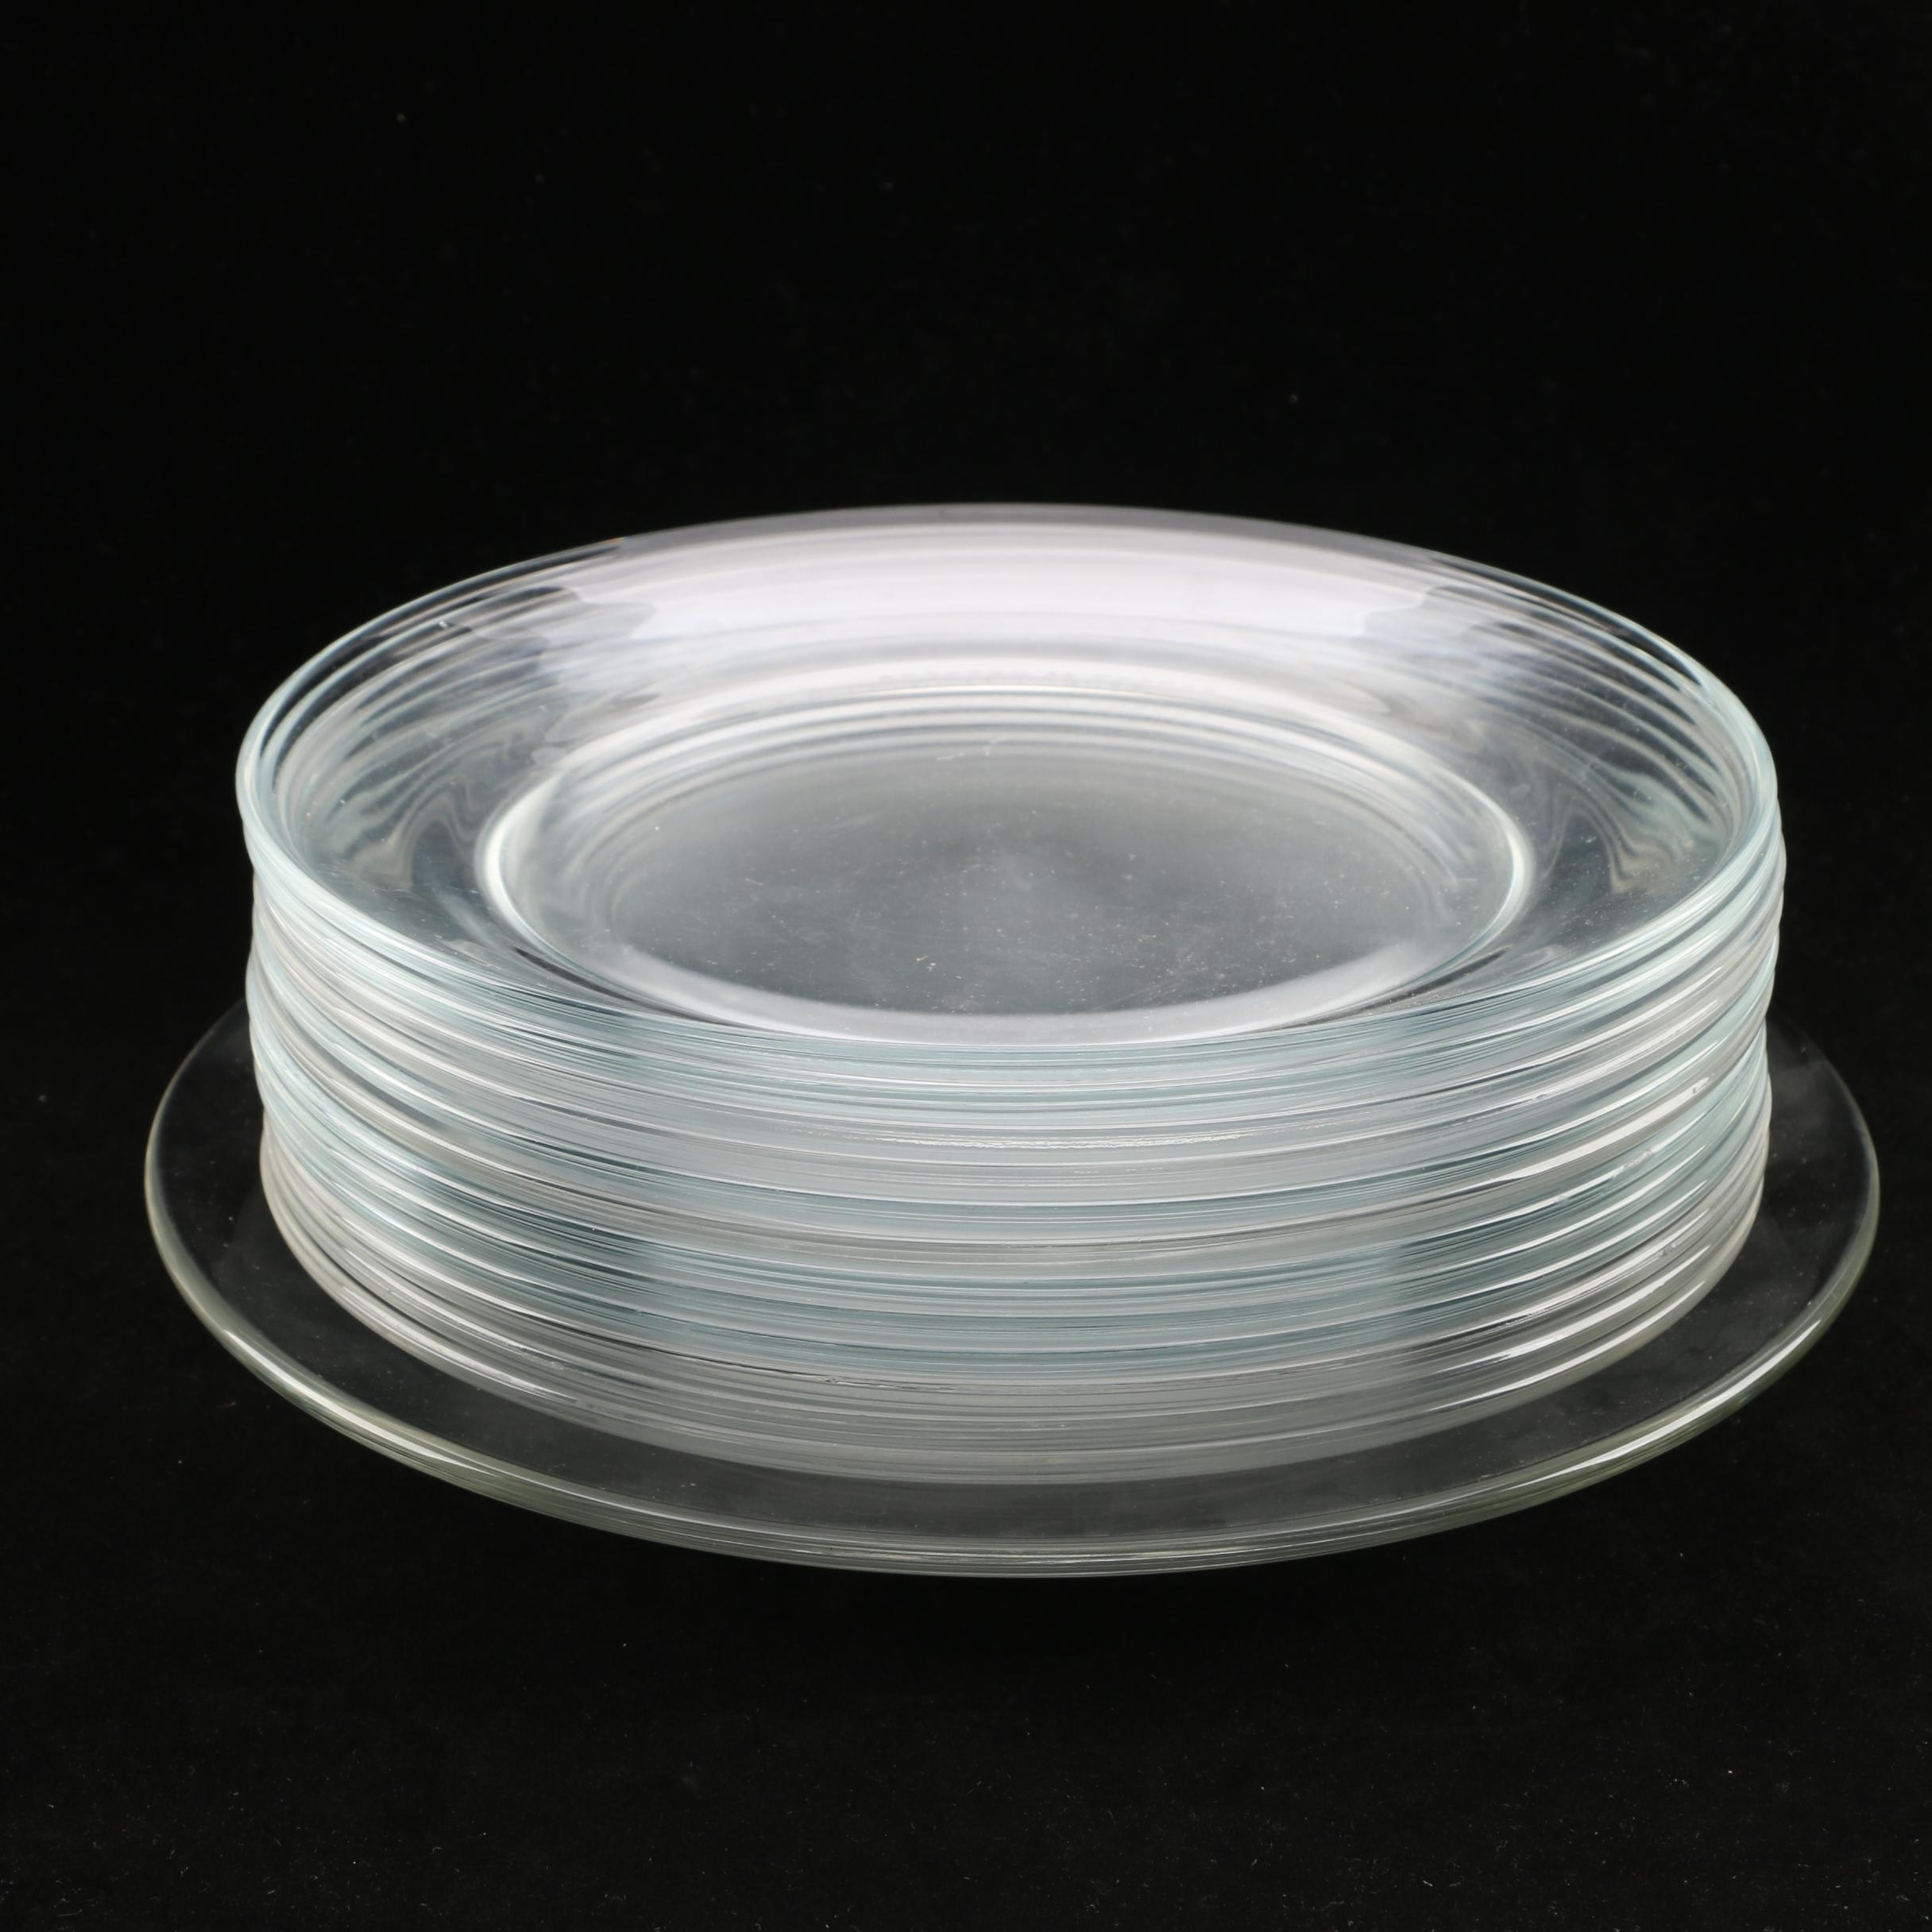 Arcoroc of France Glass Plates